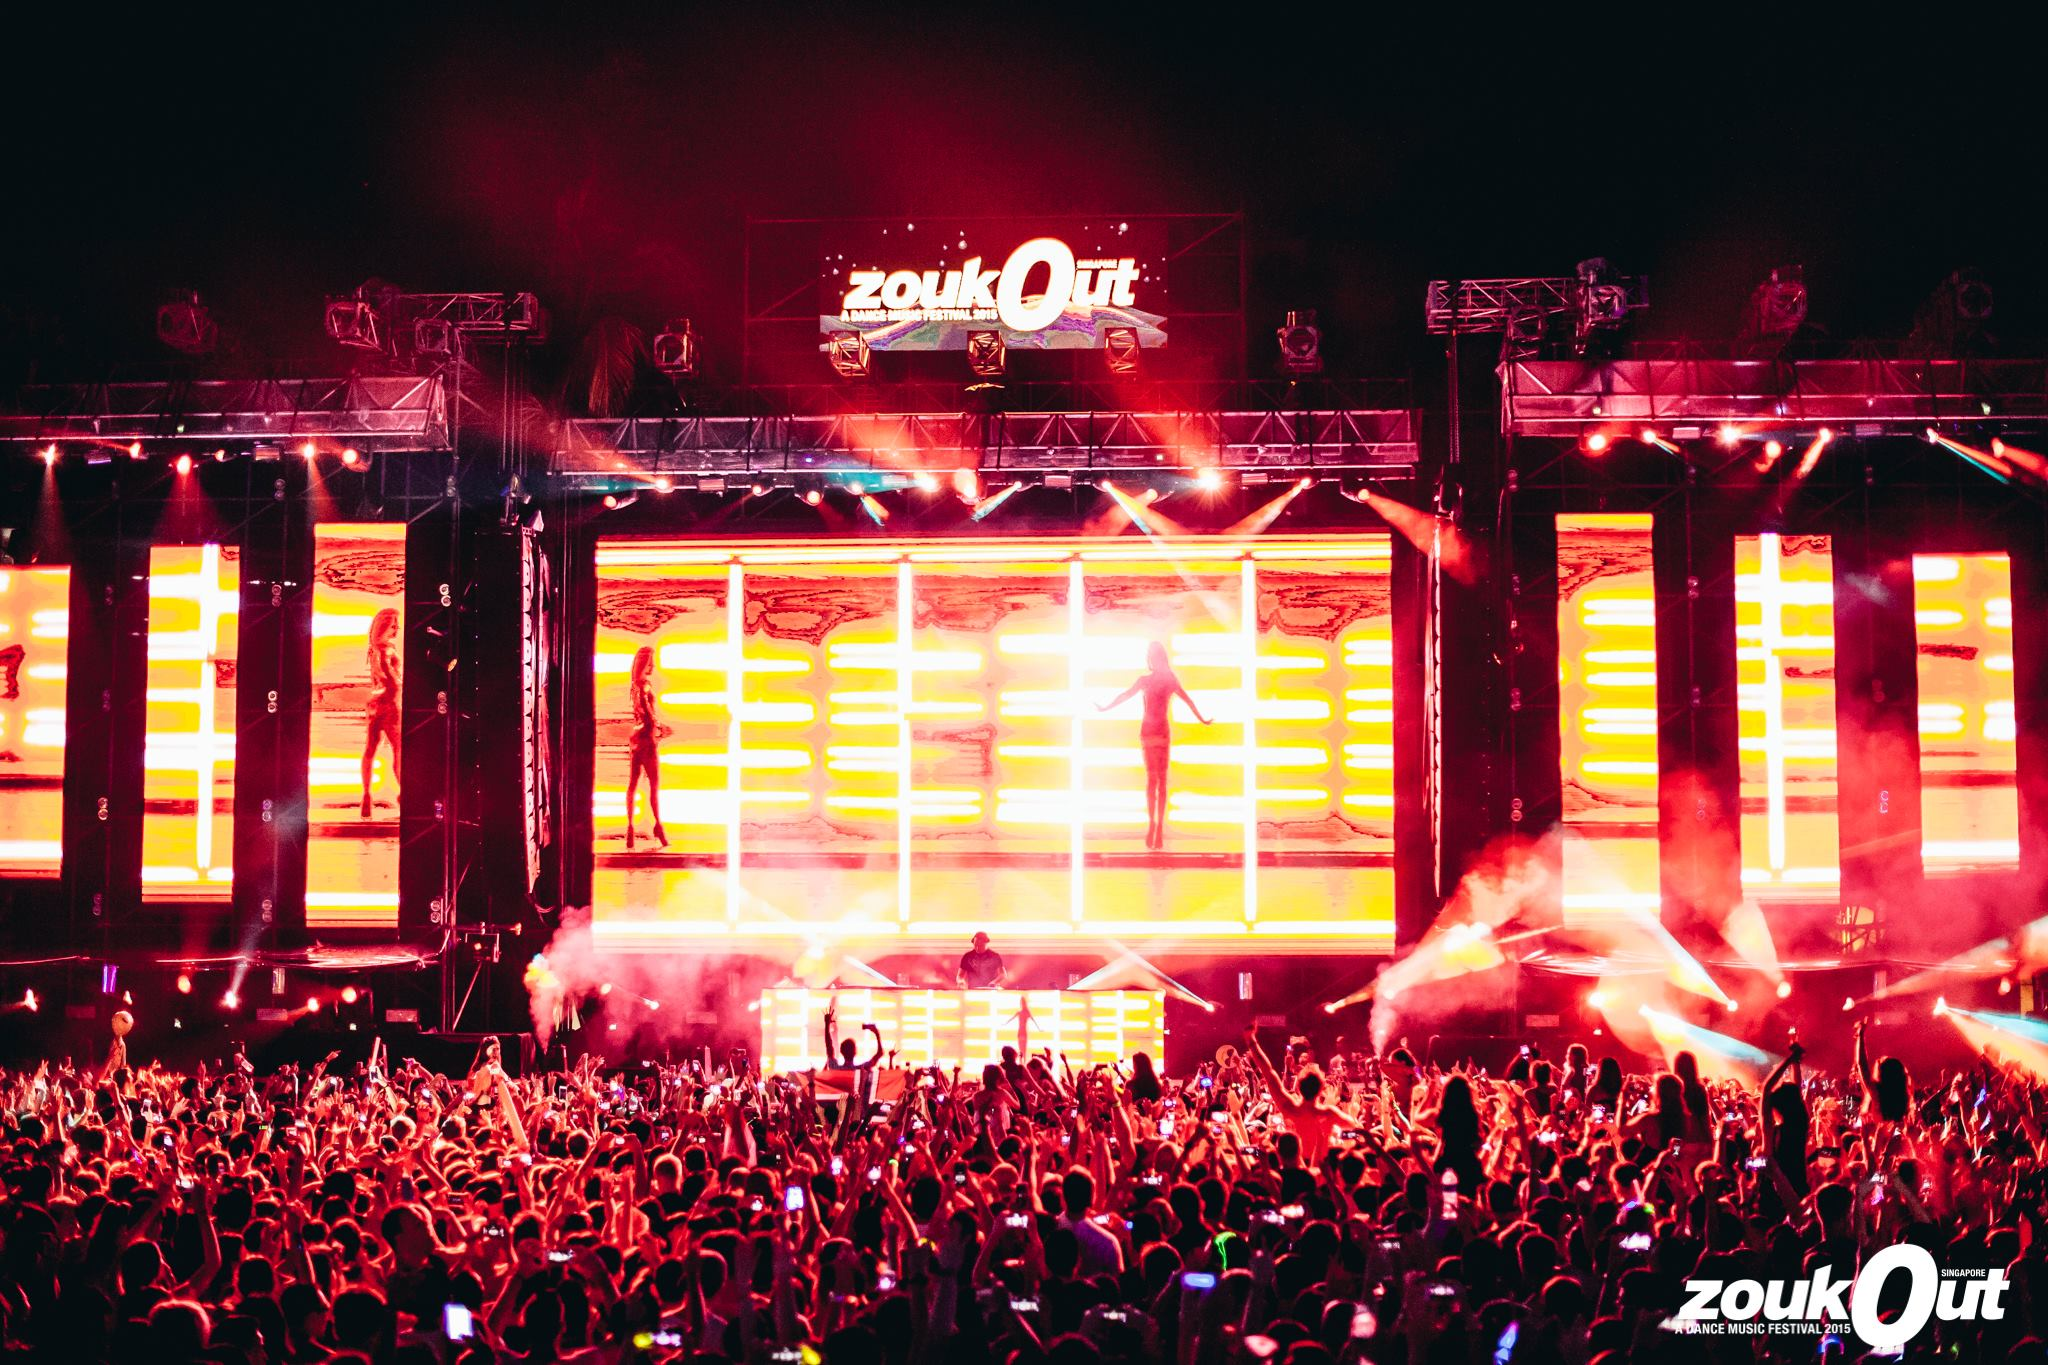 zoukout-pic2